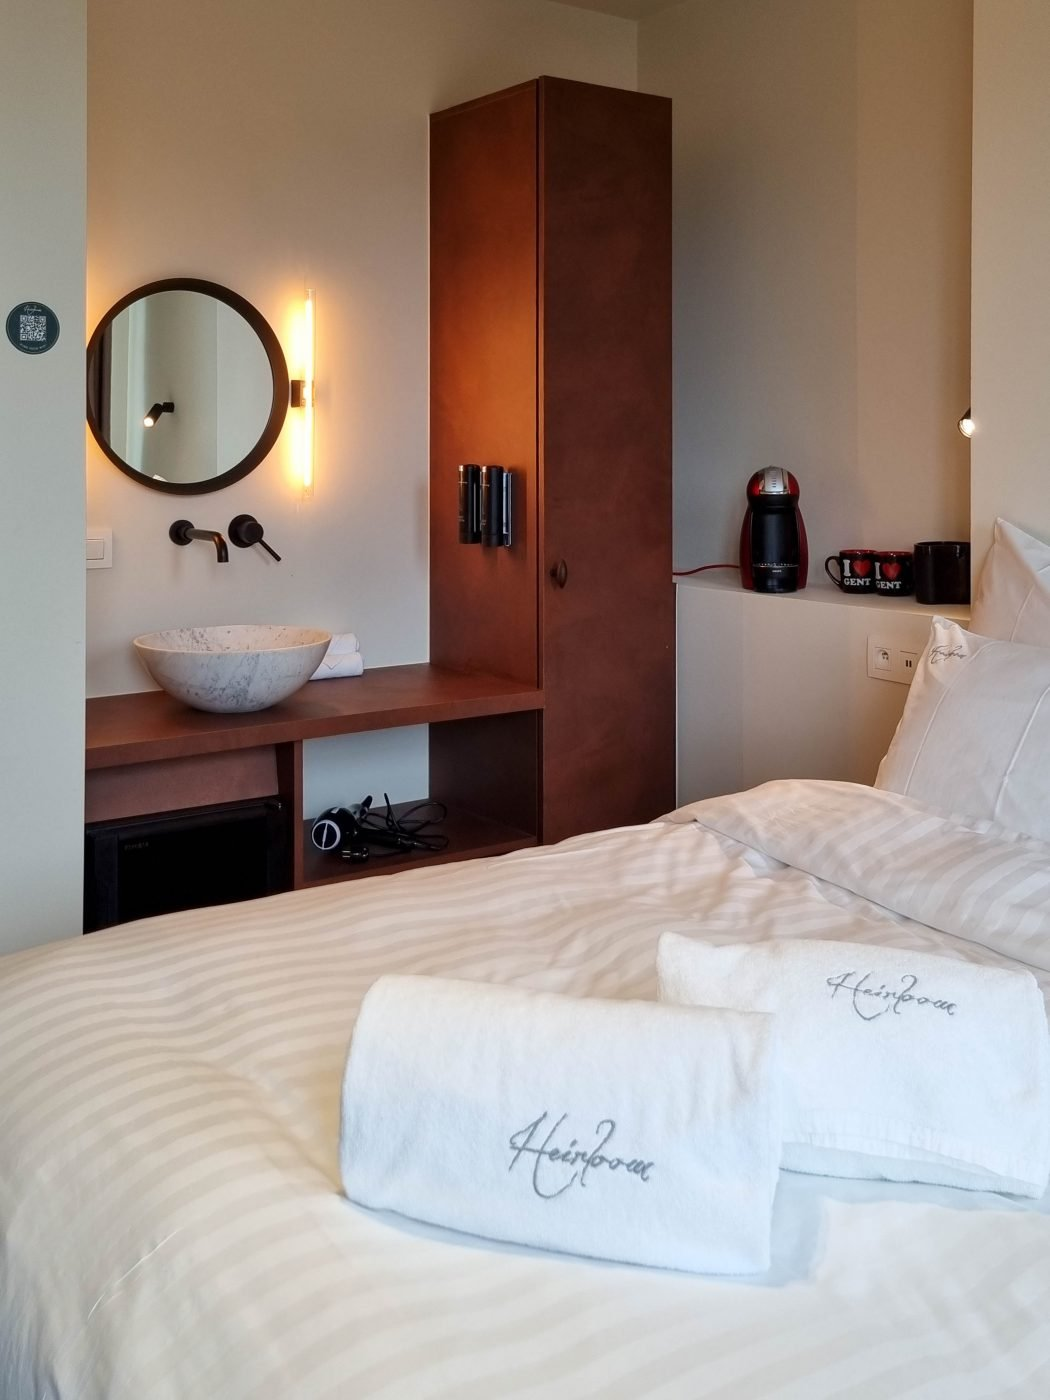 Deluxe room, the librarian, heirloom hotels, ghent